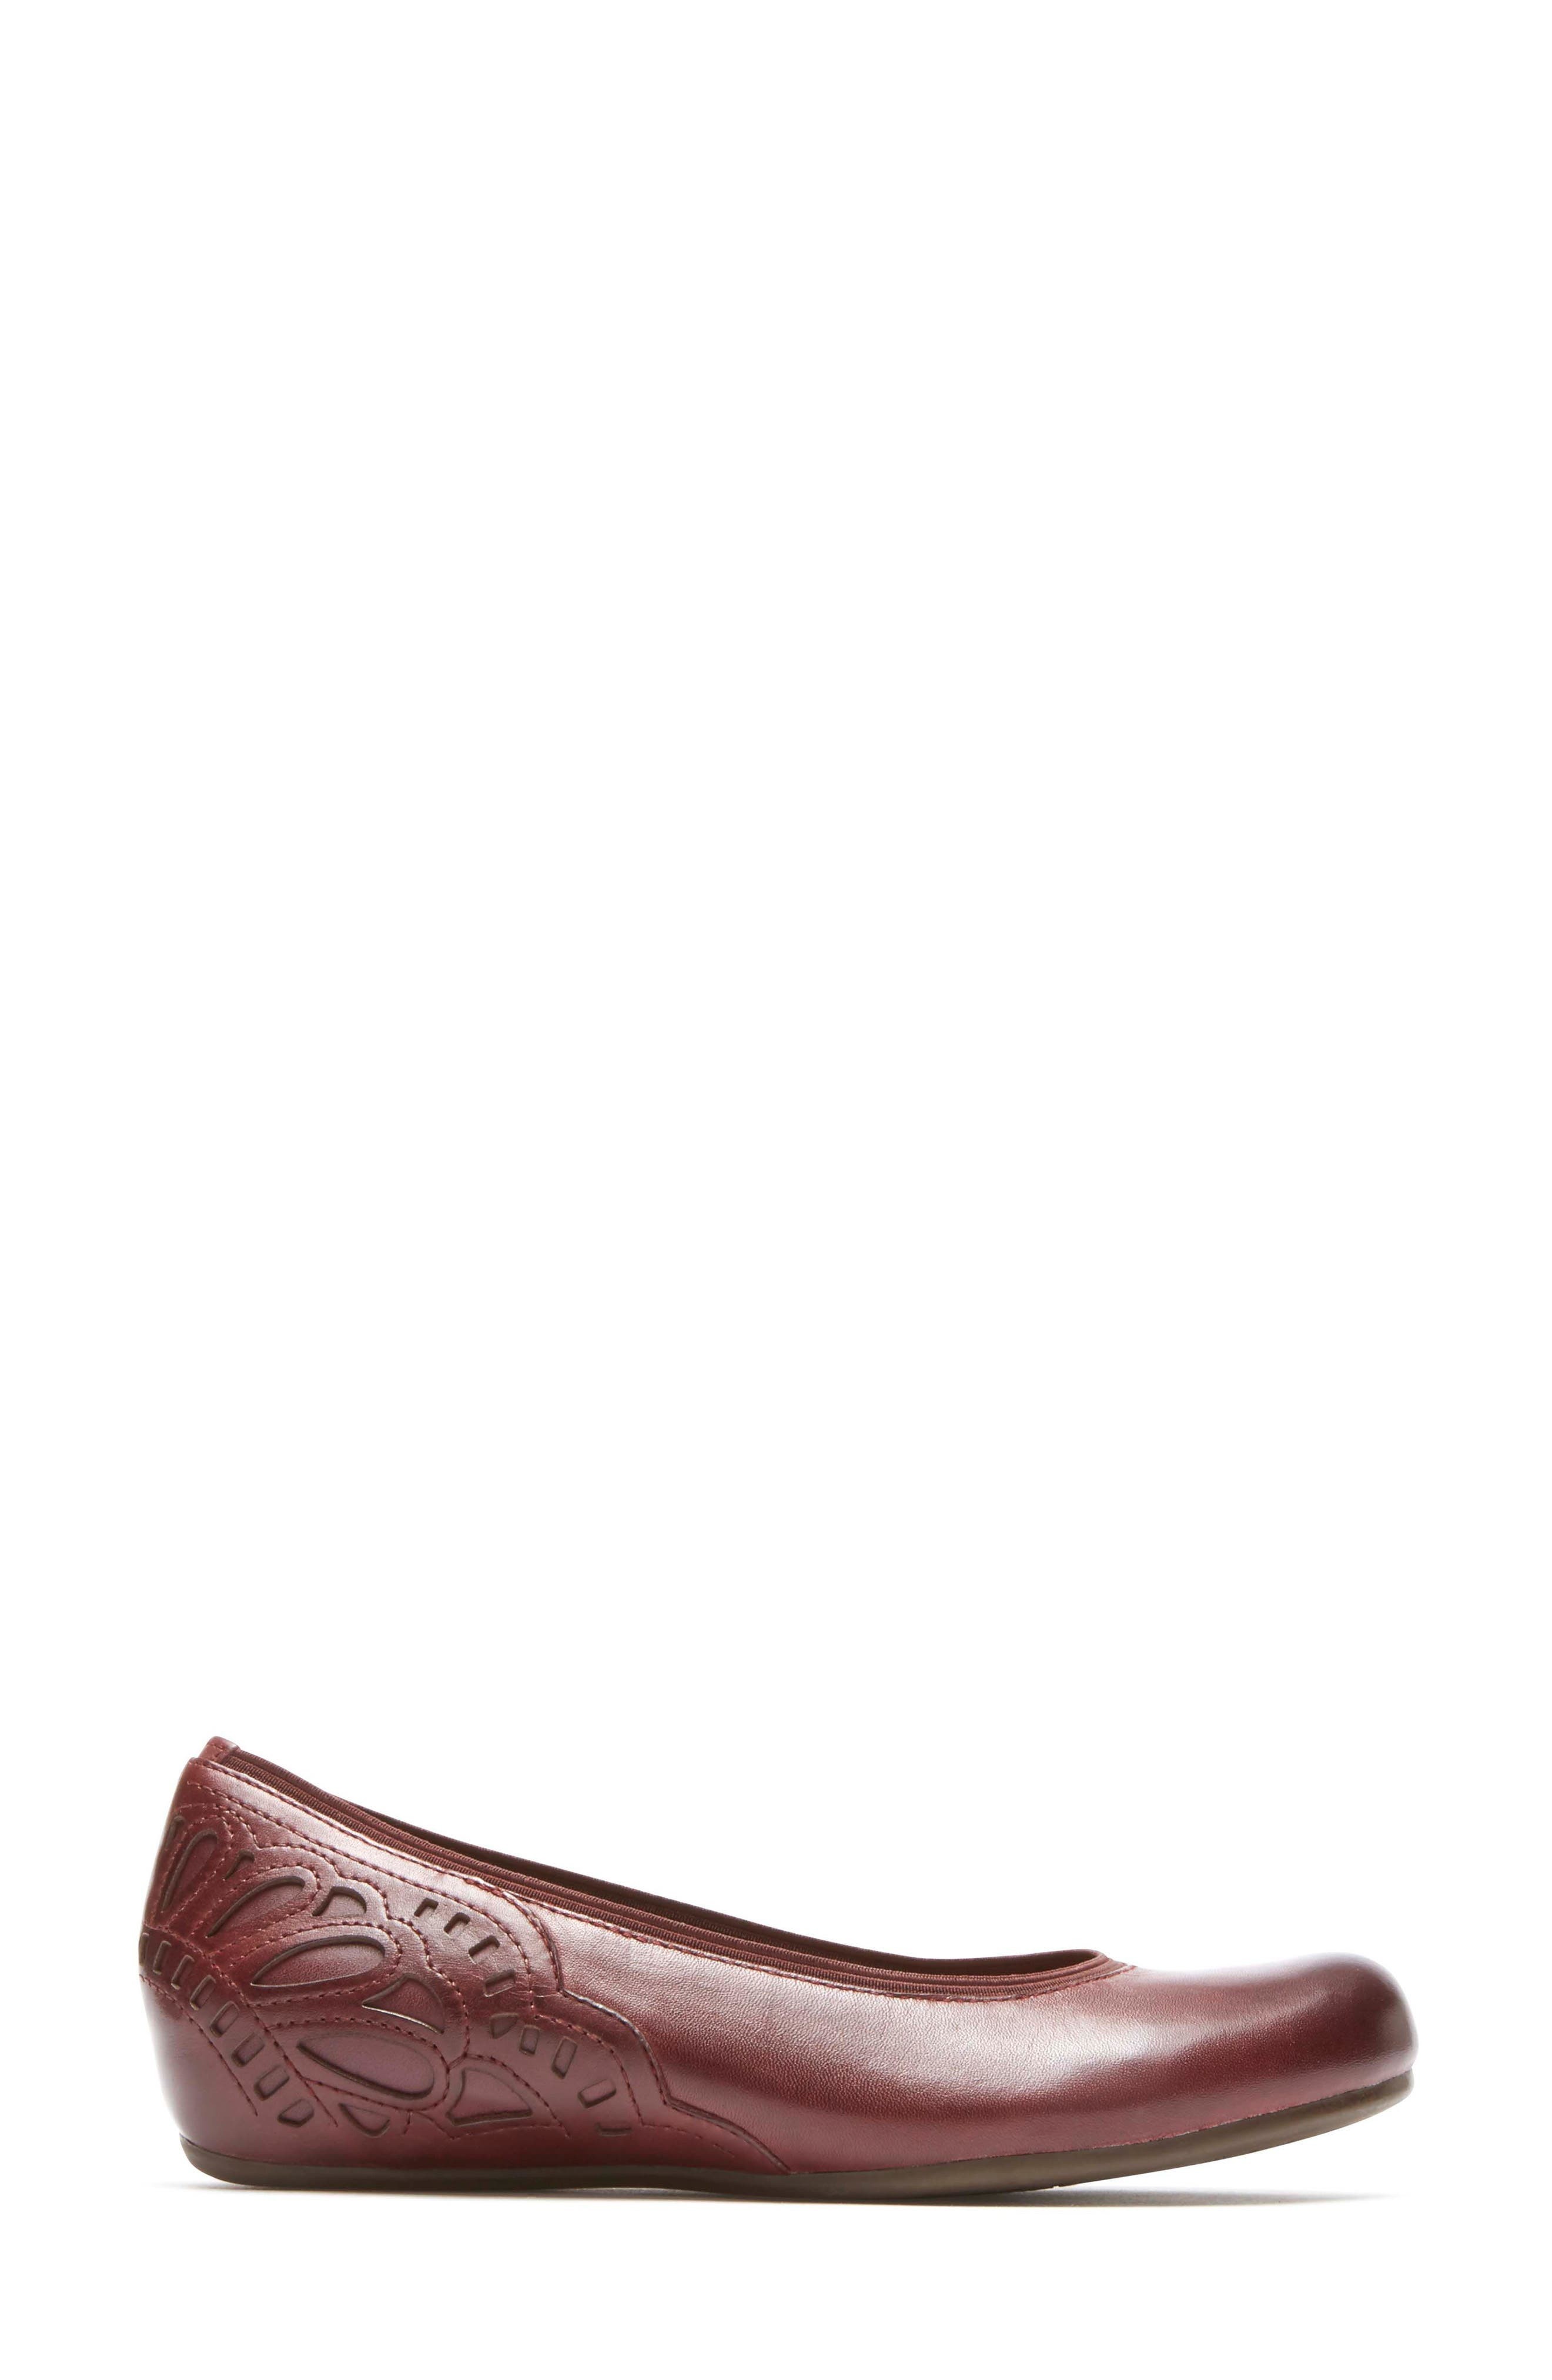 Sharleen Wedge Pump,                             Alternate thumbnail 3, color,                             MERLOT LEATHER